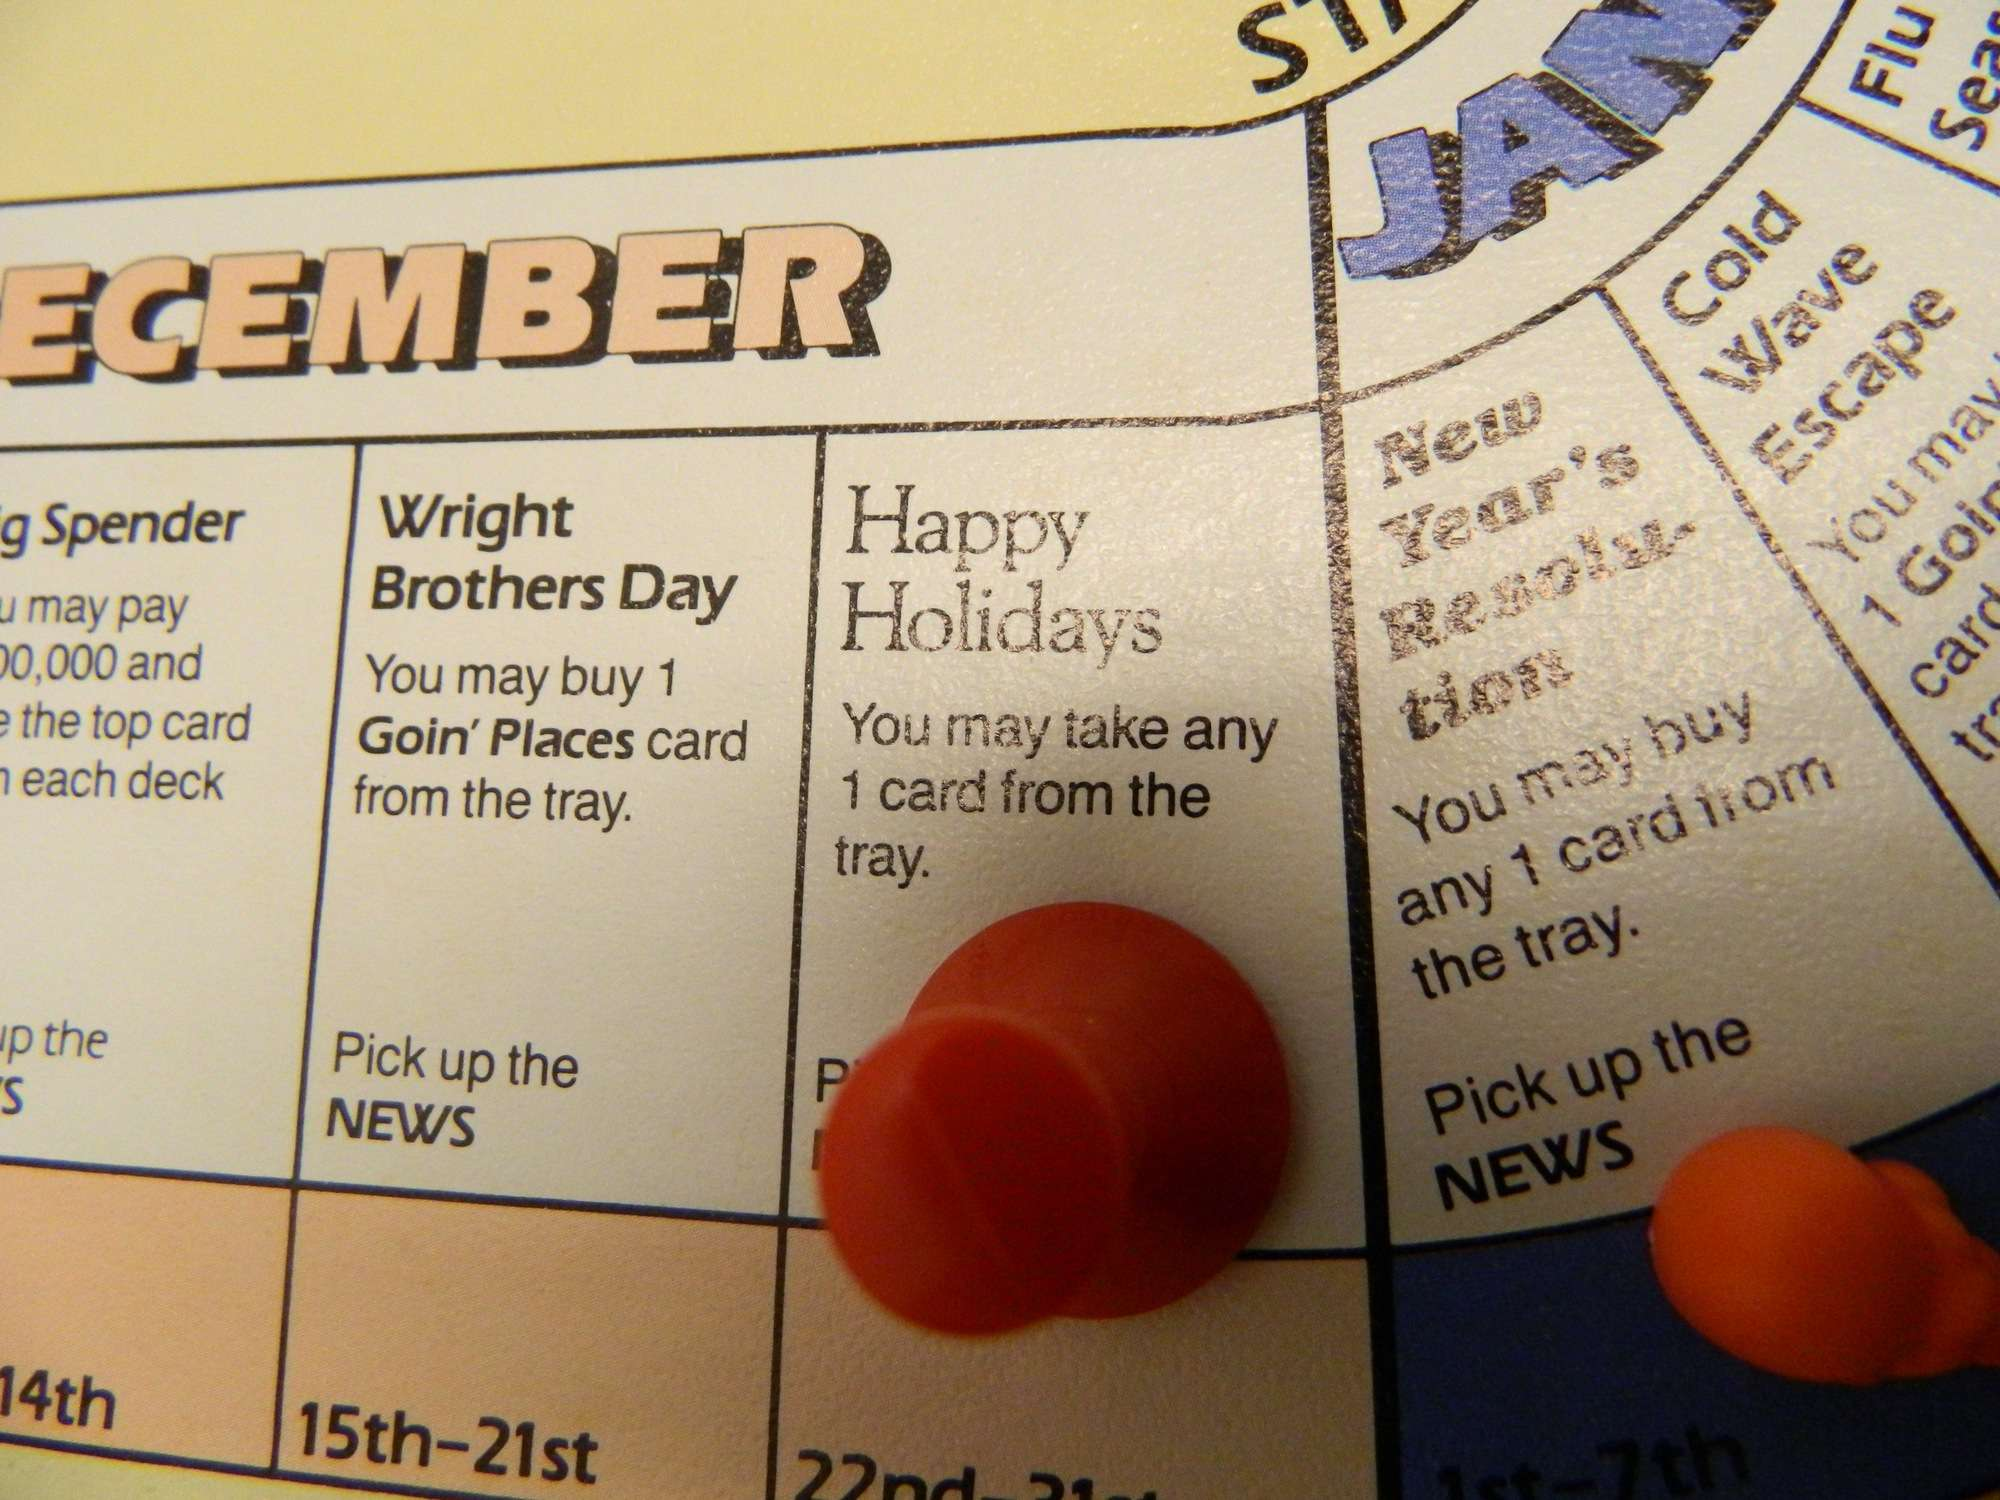 Go For It 1986 Board Game Review And Instructions Geeky Hobbies